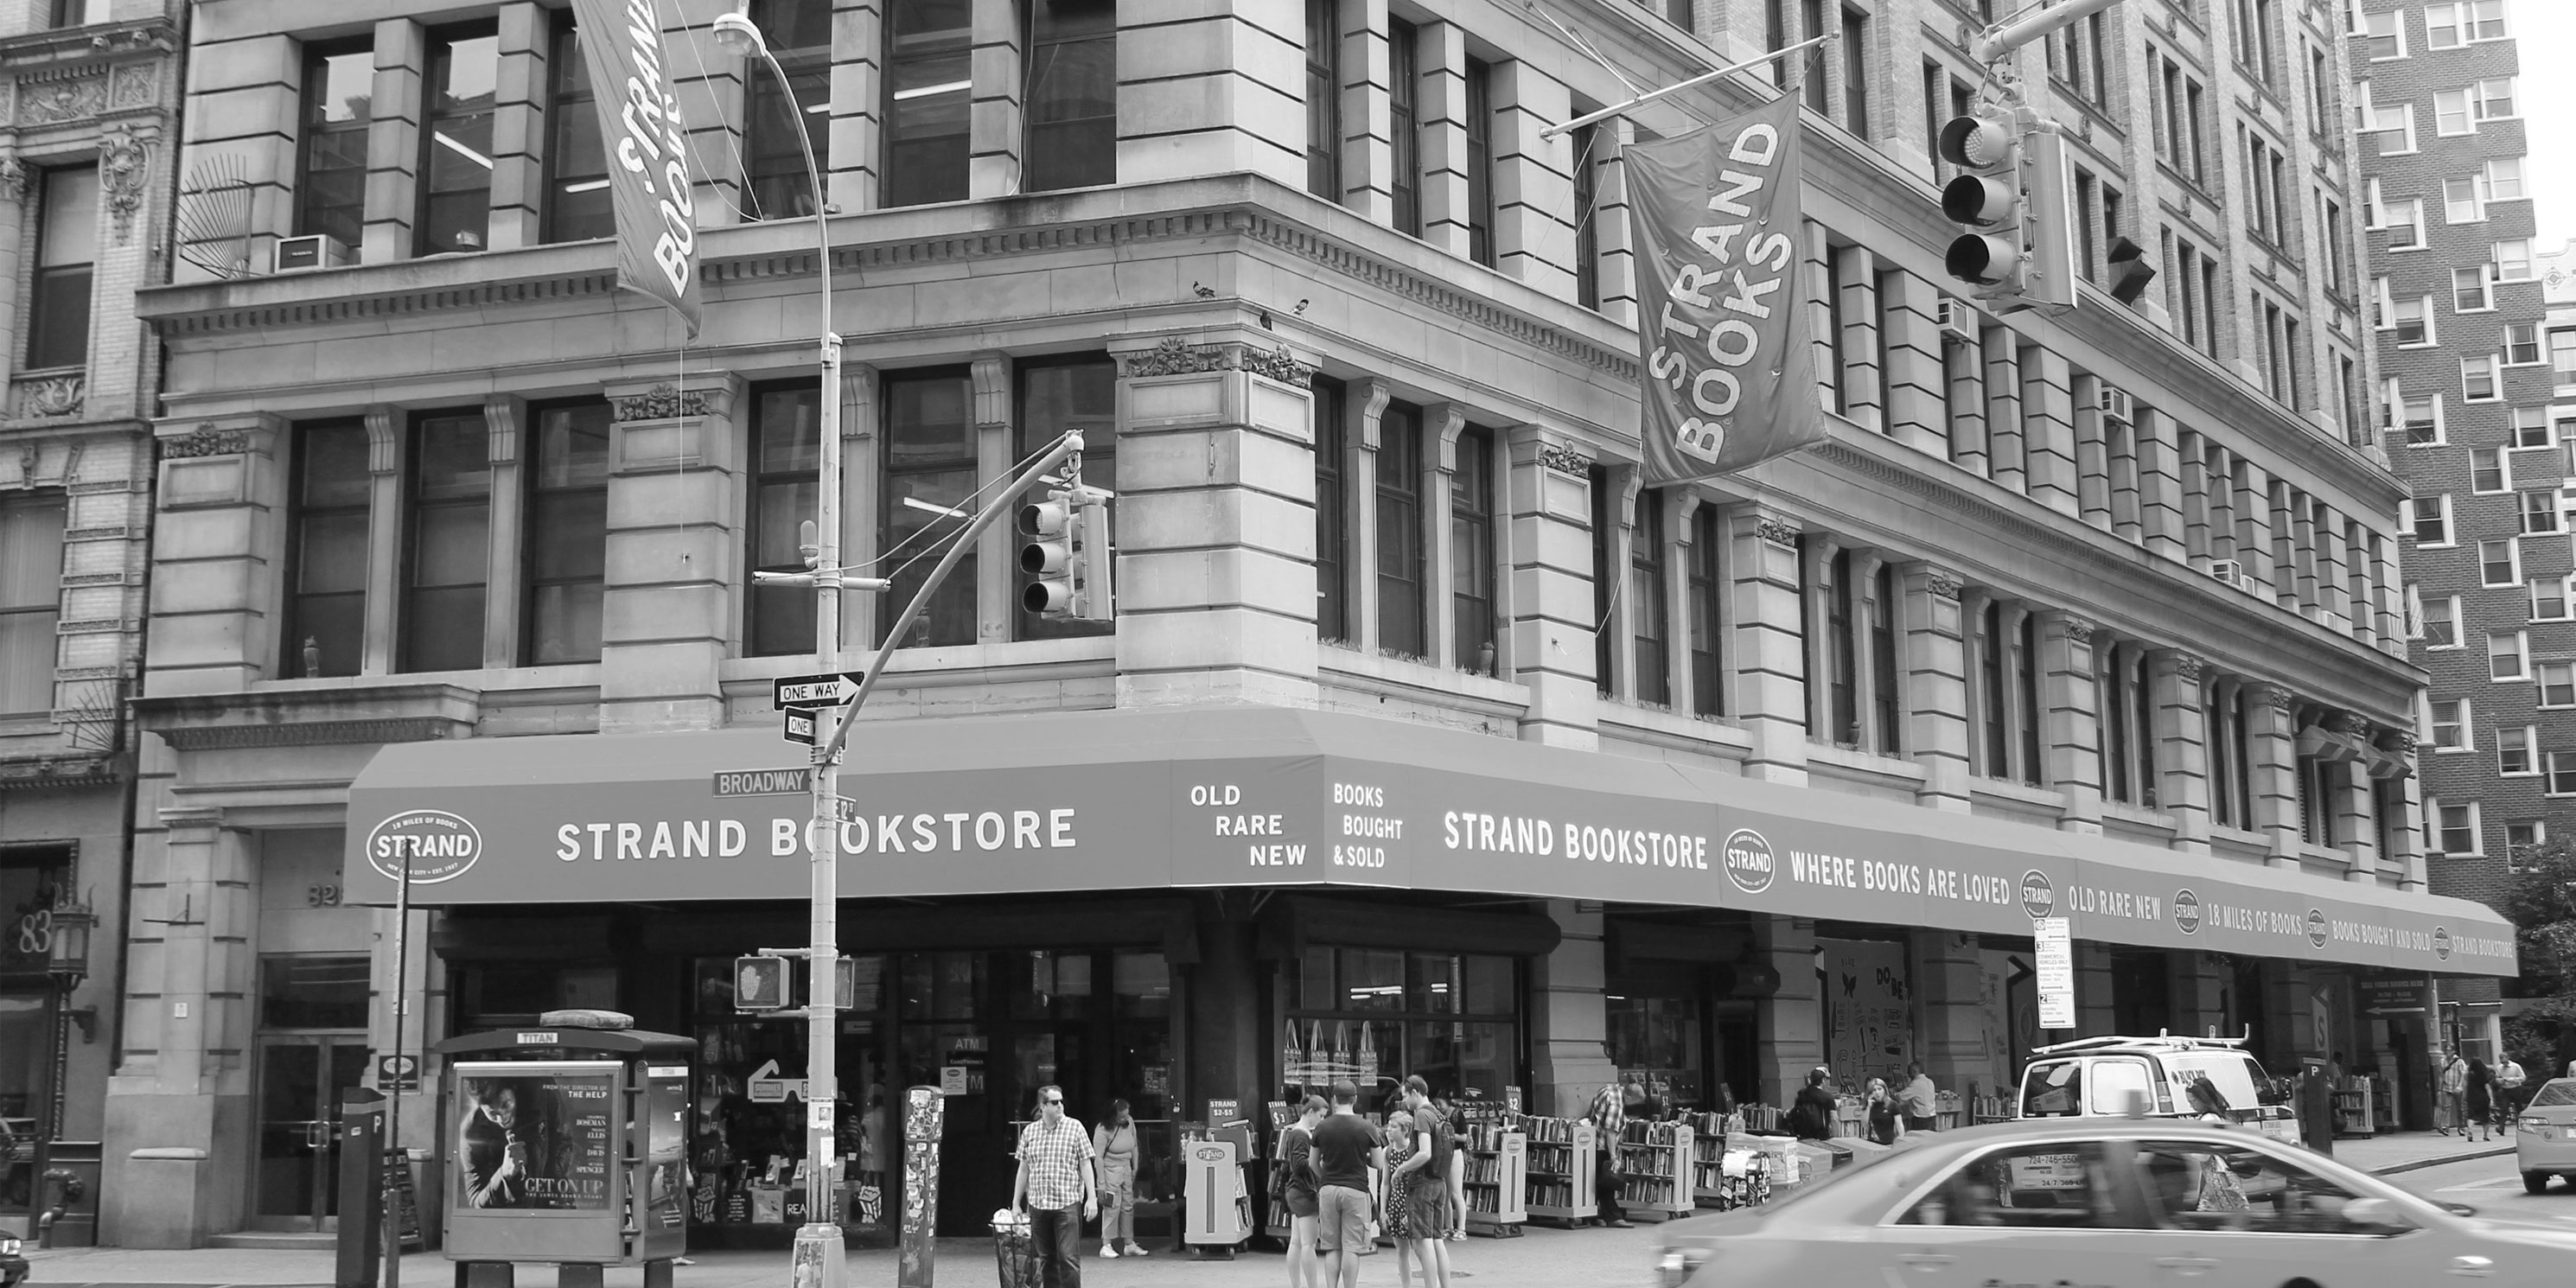 826 Broadway, The Strand Bookstore. Photo: Wikimedia Commons, Brianne.sperber